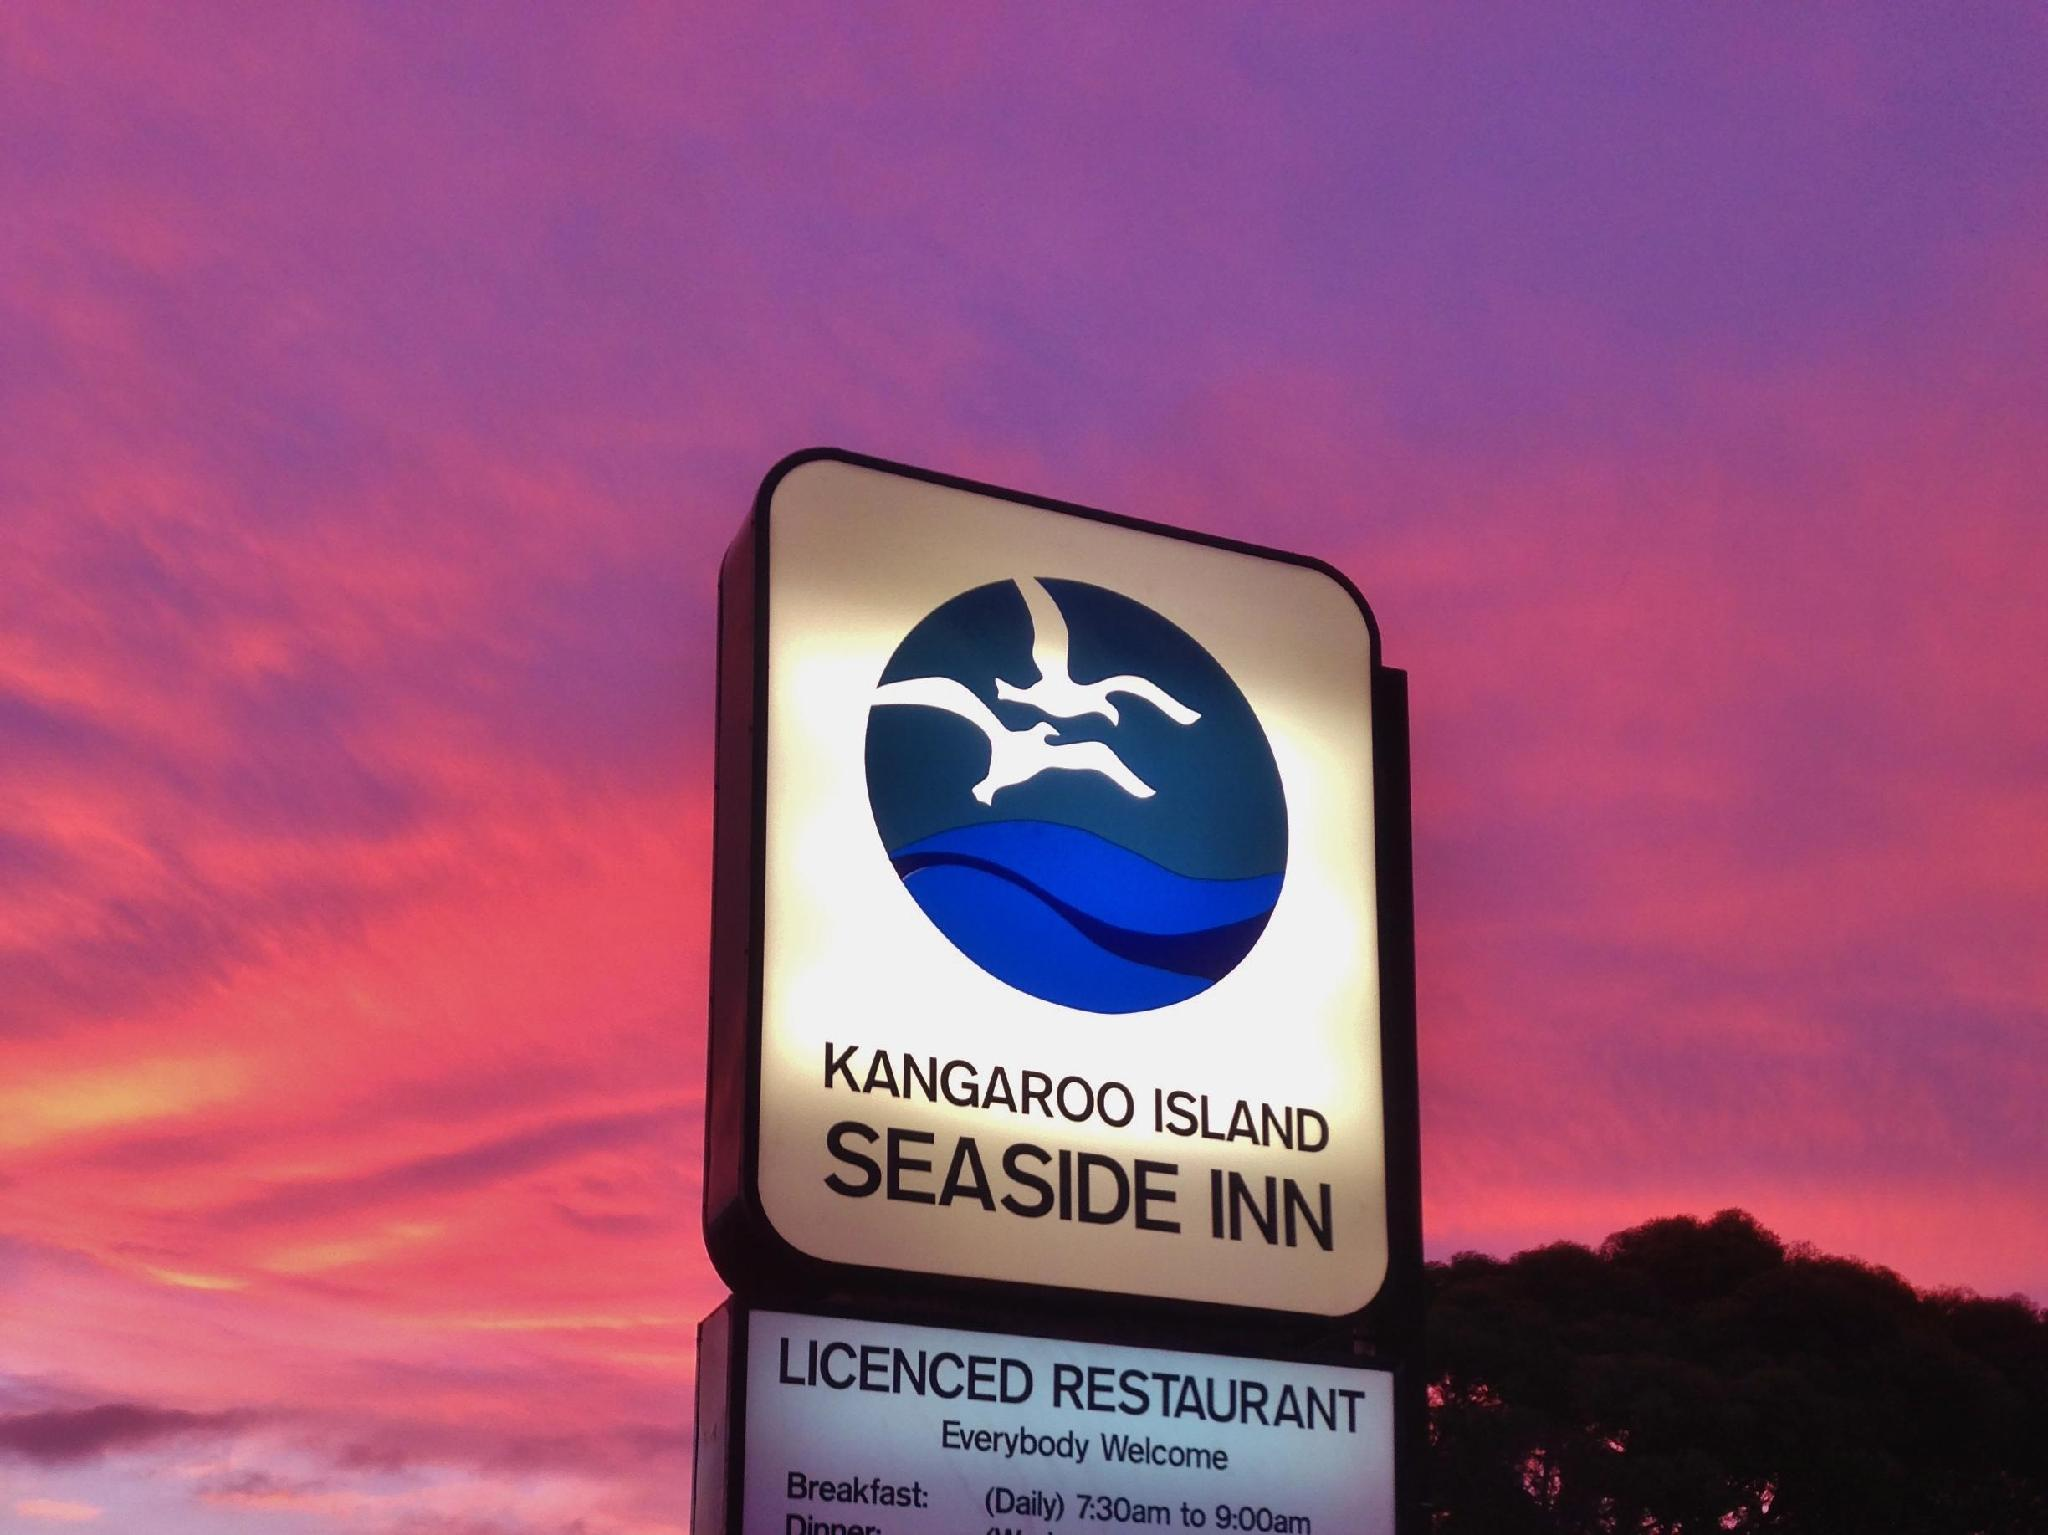 Discount Kangaroo Island Seaside Inn